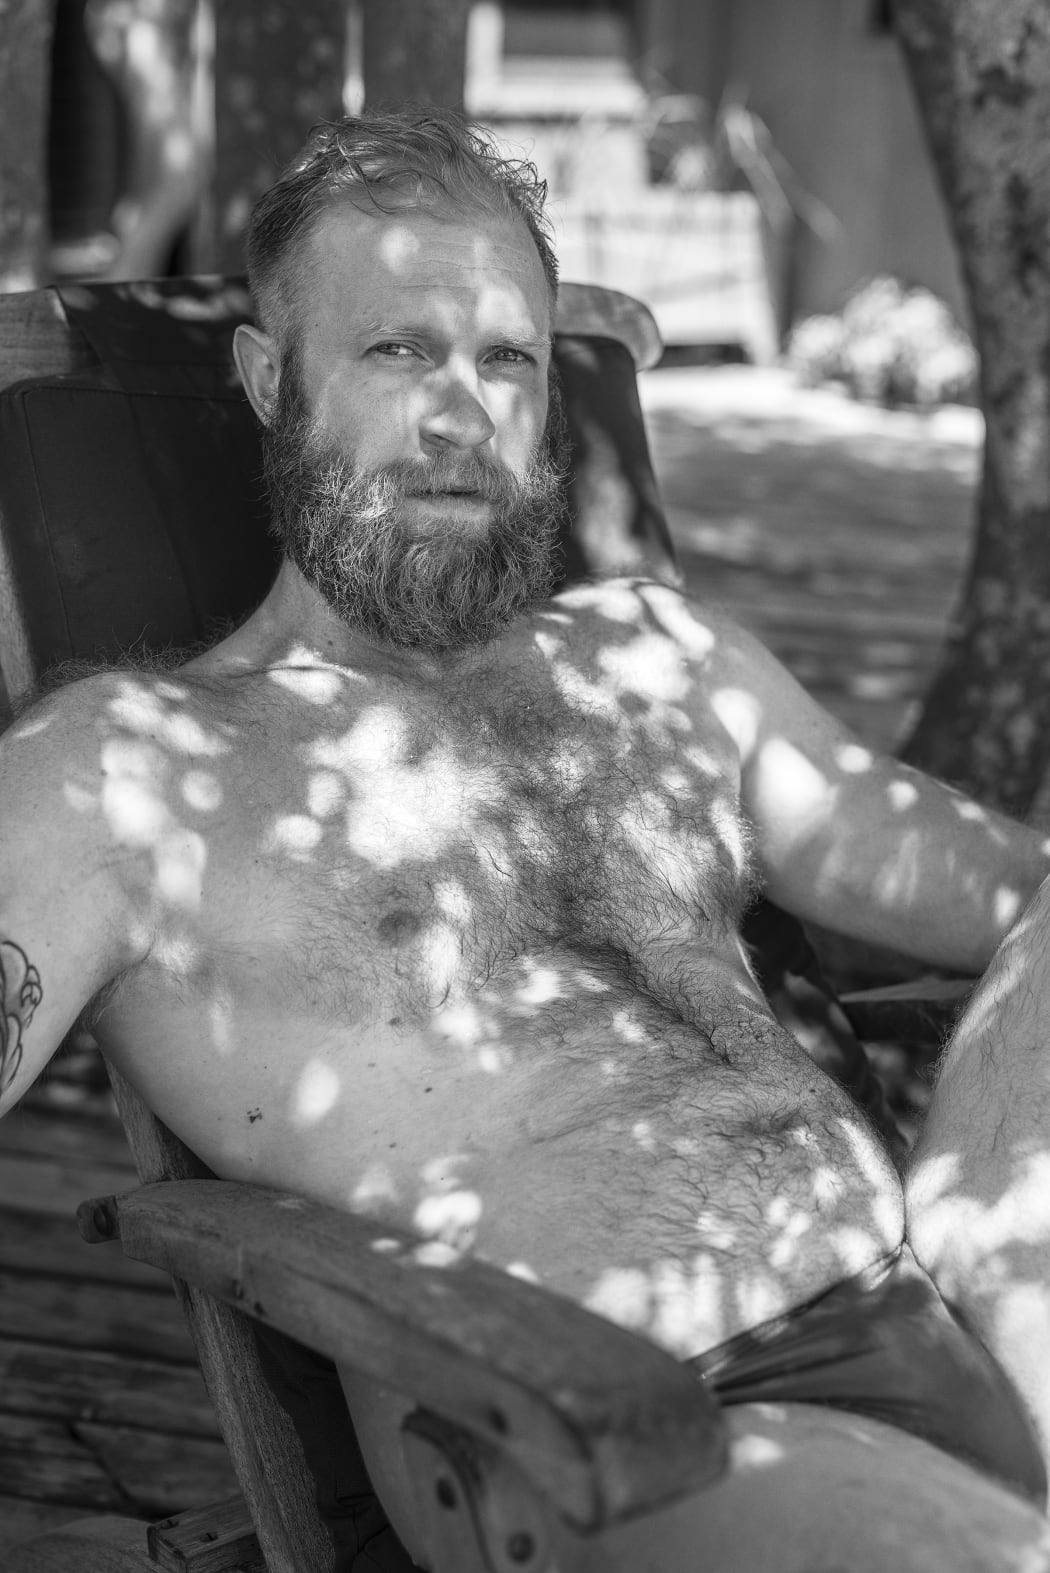 Bryson Rand. Zack in Dappled Light (Fire Island), 2019. Archival inkjet print 40 × 28 in. 101.6 × 71.1 cm. Courtesy of the artist and Zeit Contemporary Art, New York